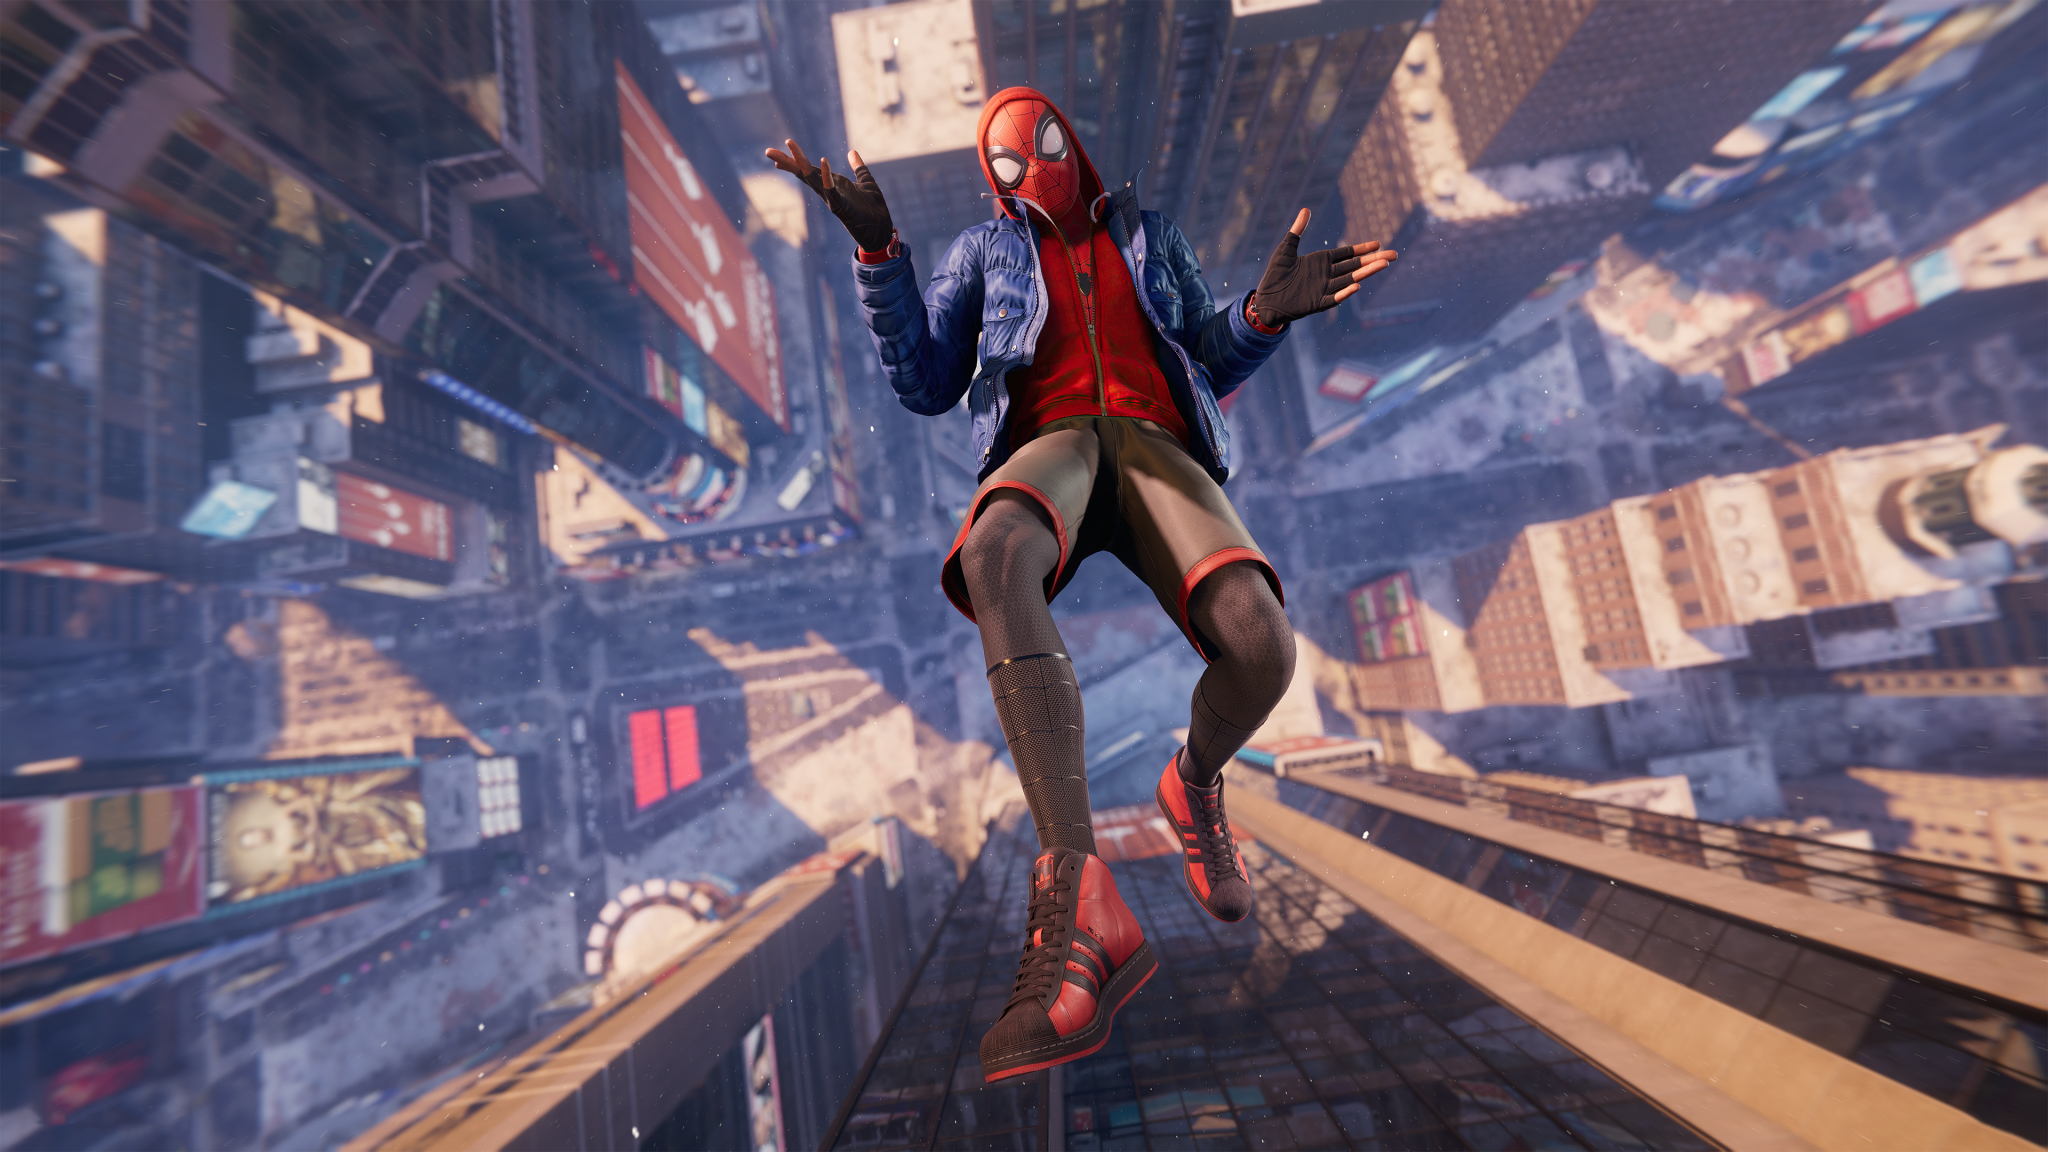 2048x1152 Miles Morales Spider-Man Falling Cool 2048x1152 ...